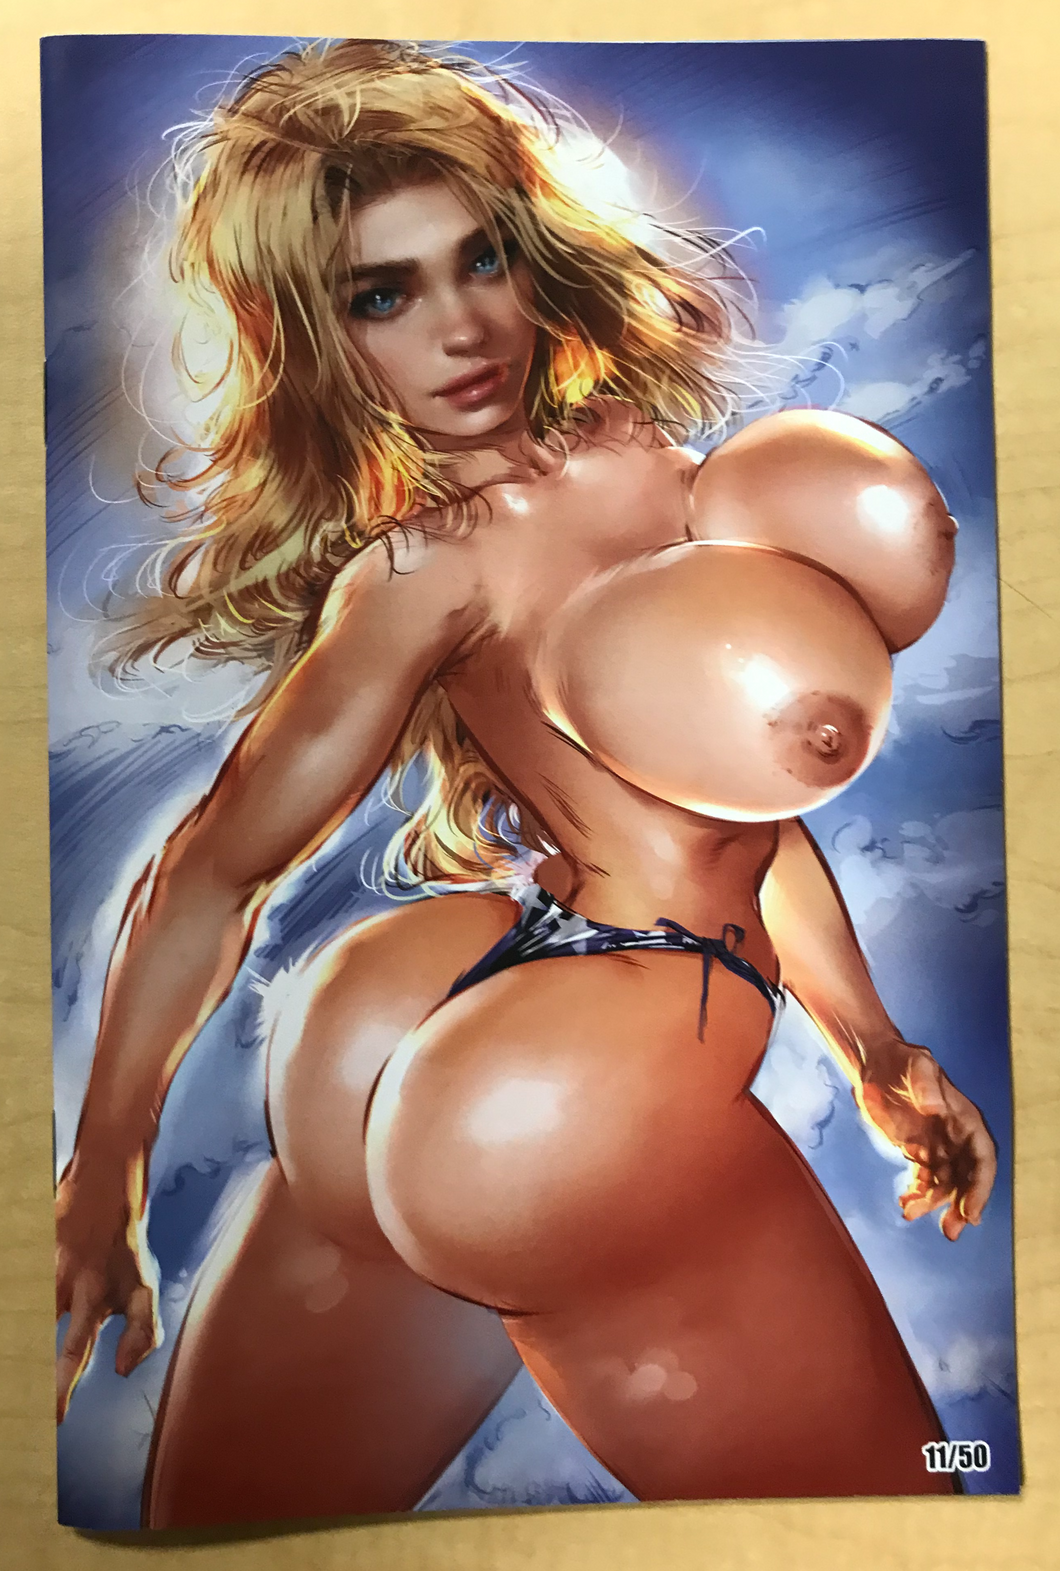 Patriotika: Forbidden Dreams Naughty Pin Up Book Ale Borgobello Naughty Topless Variant Cover Limited to Only 50 Copies!!!